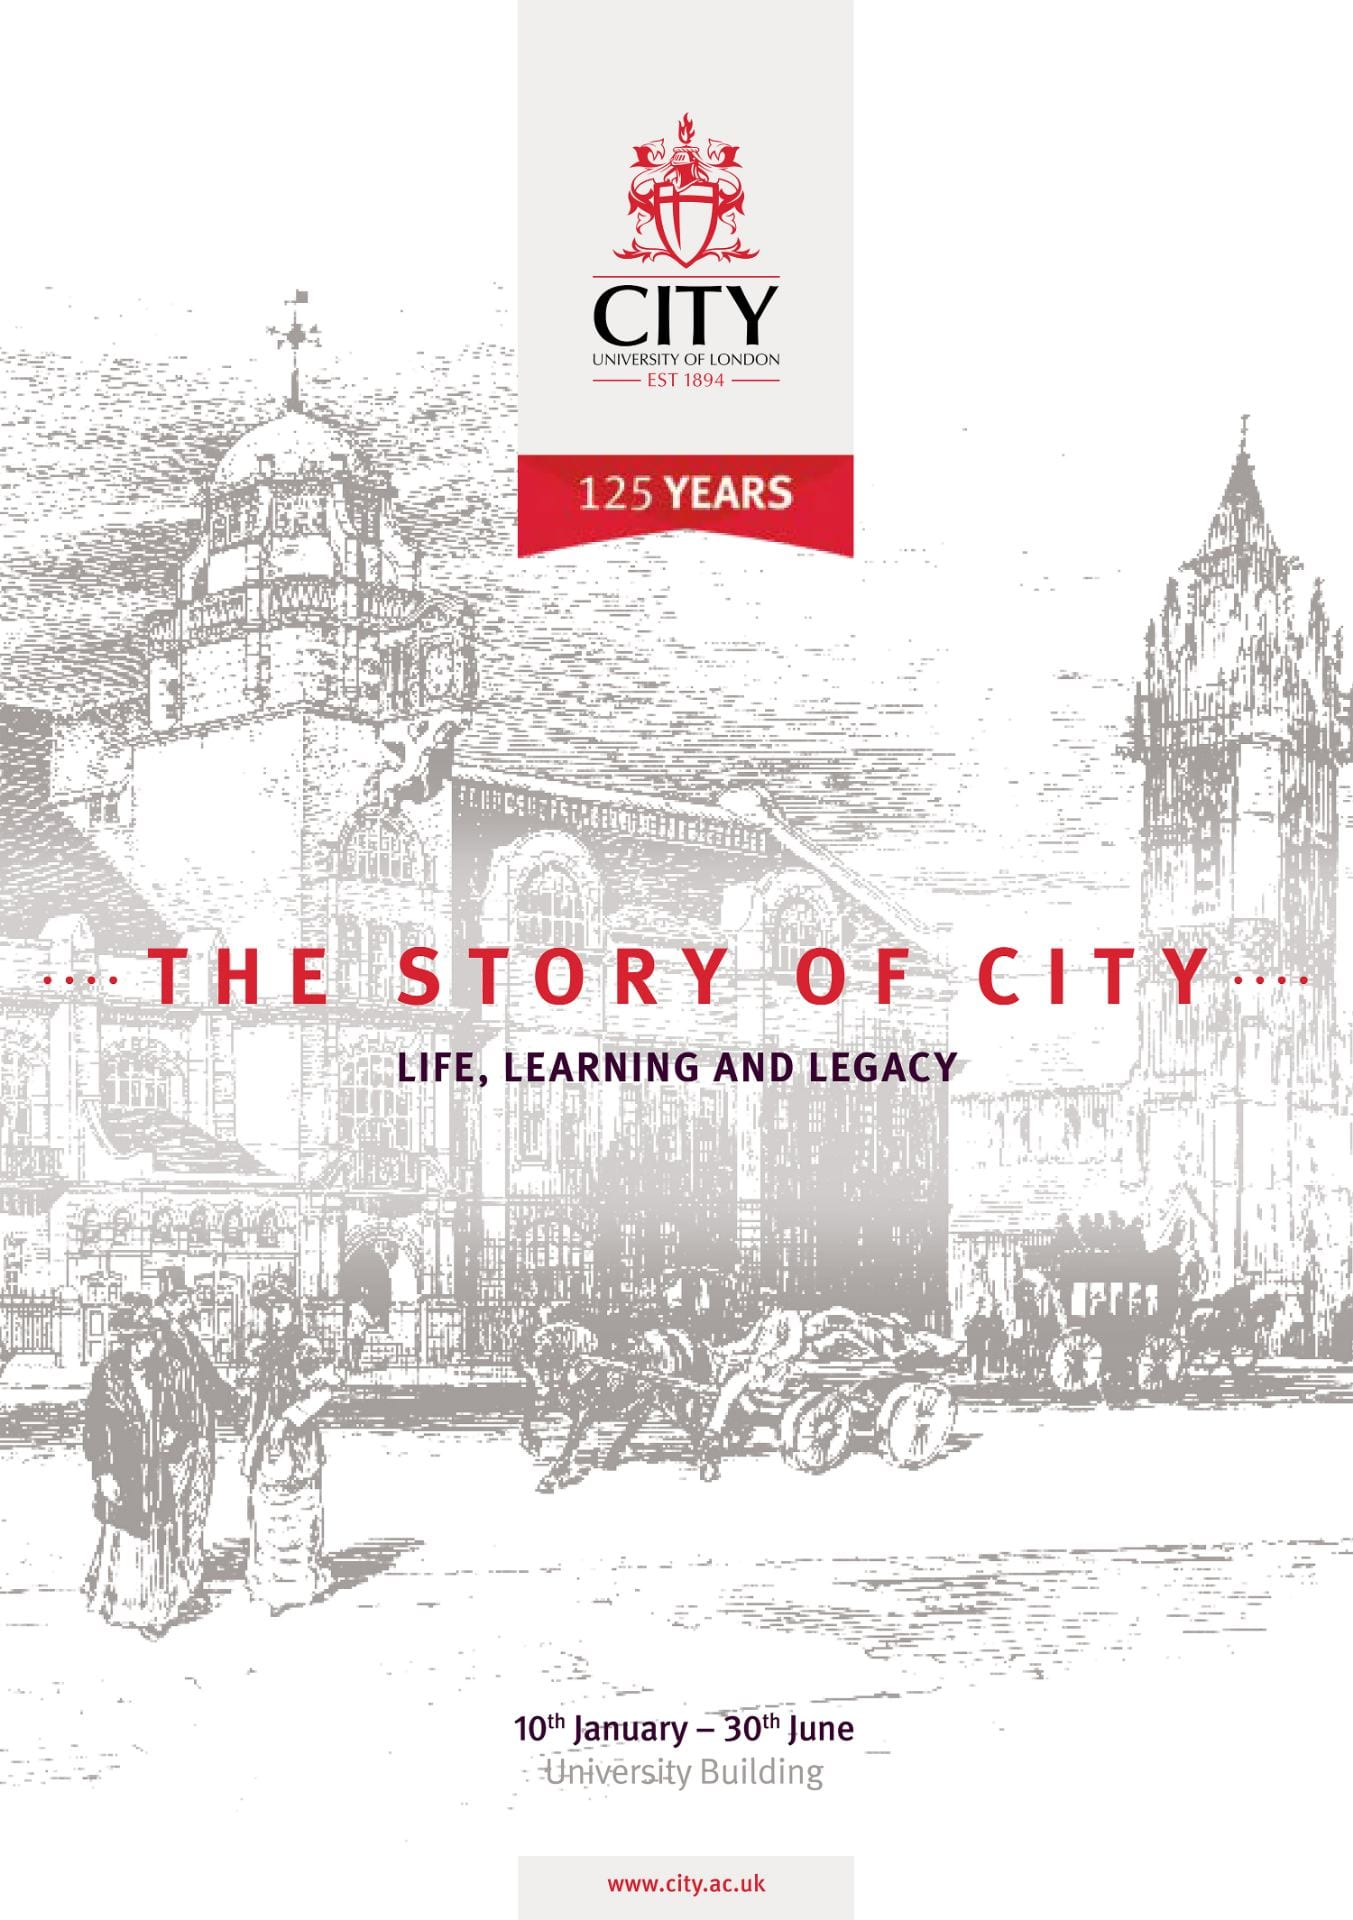 Celebrating 125 years of City